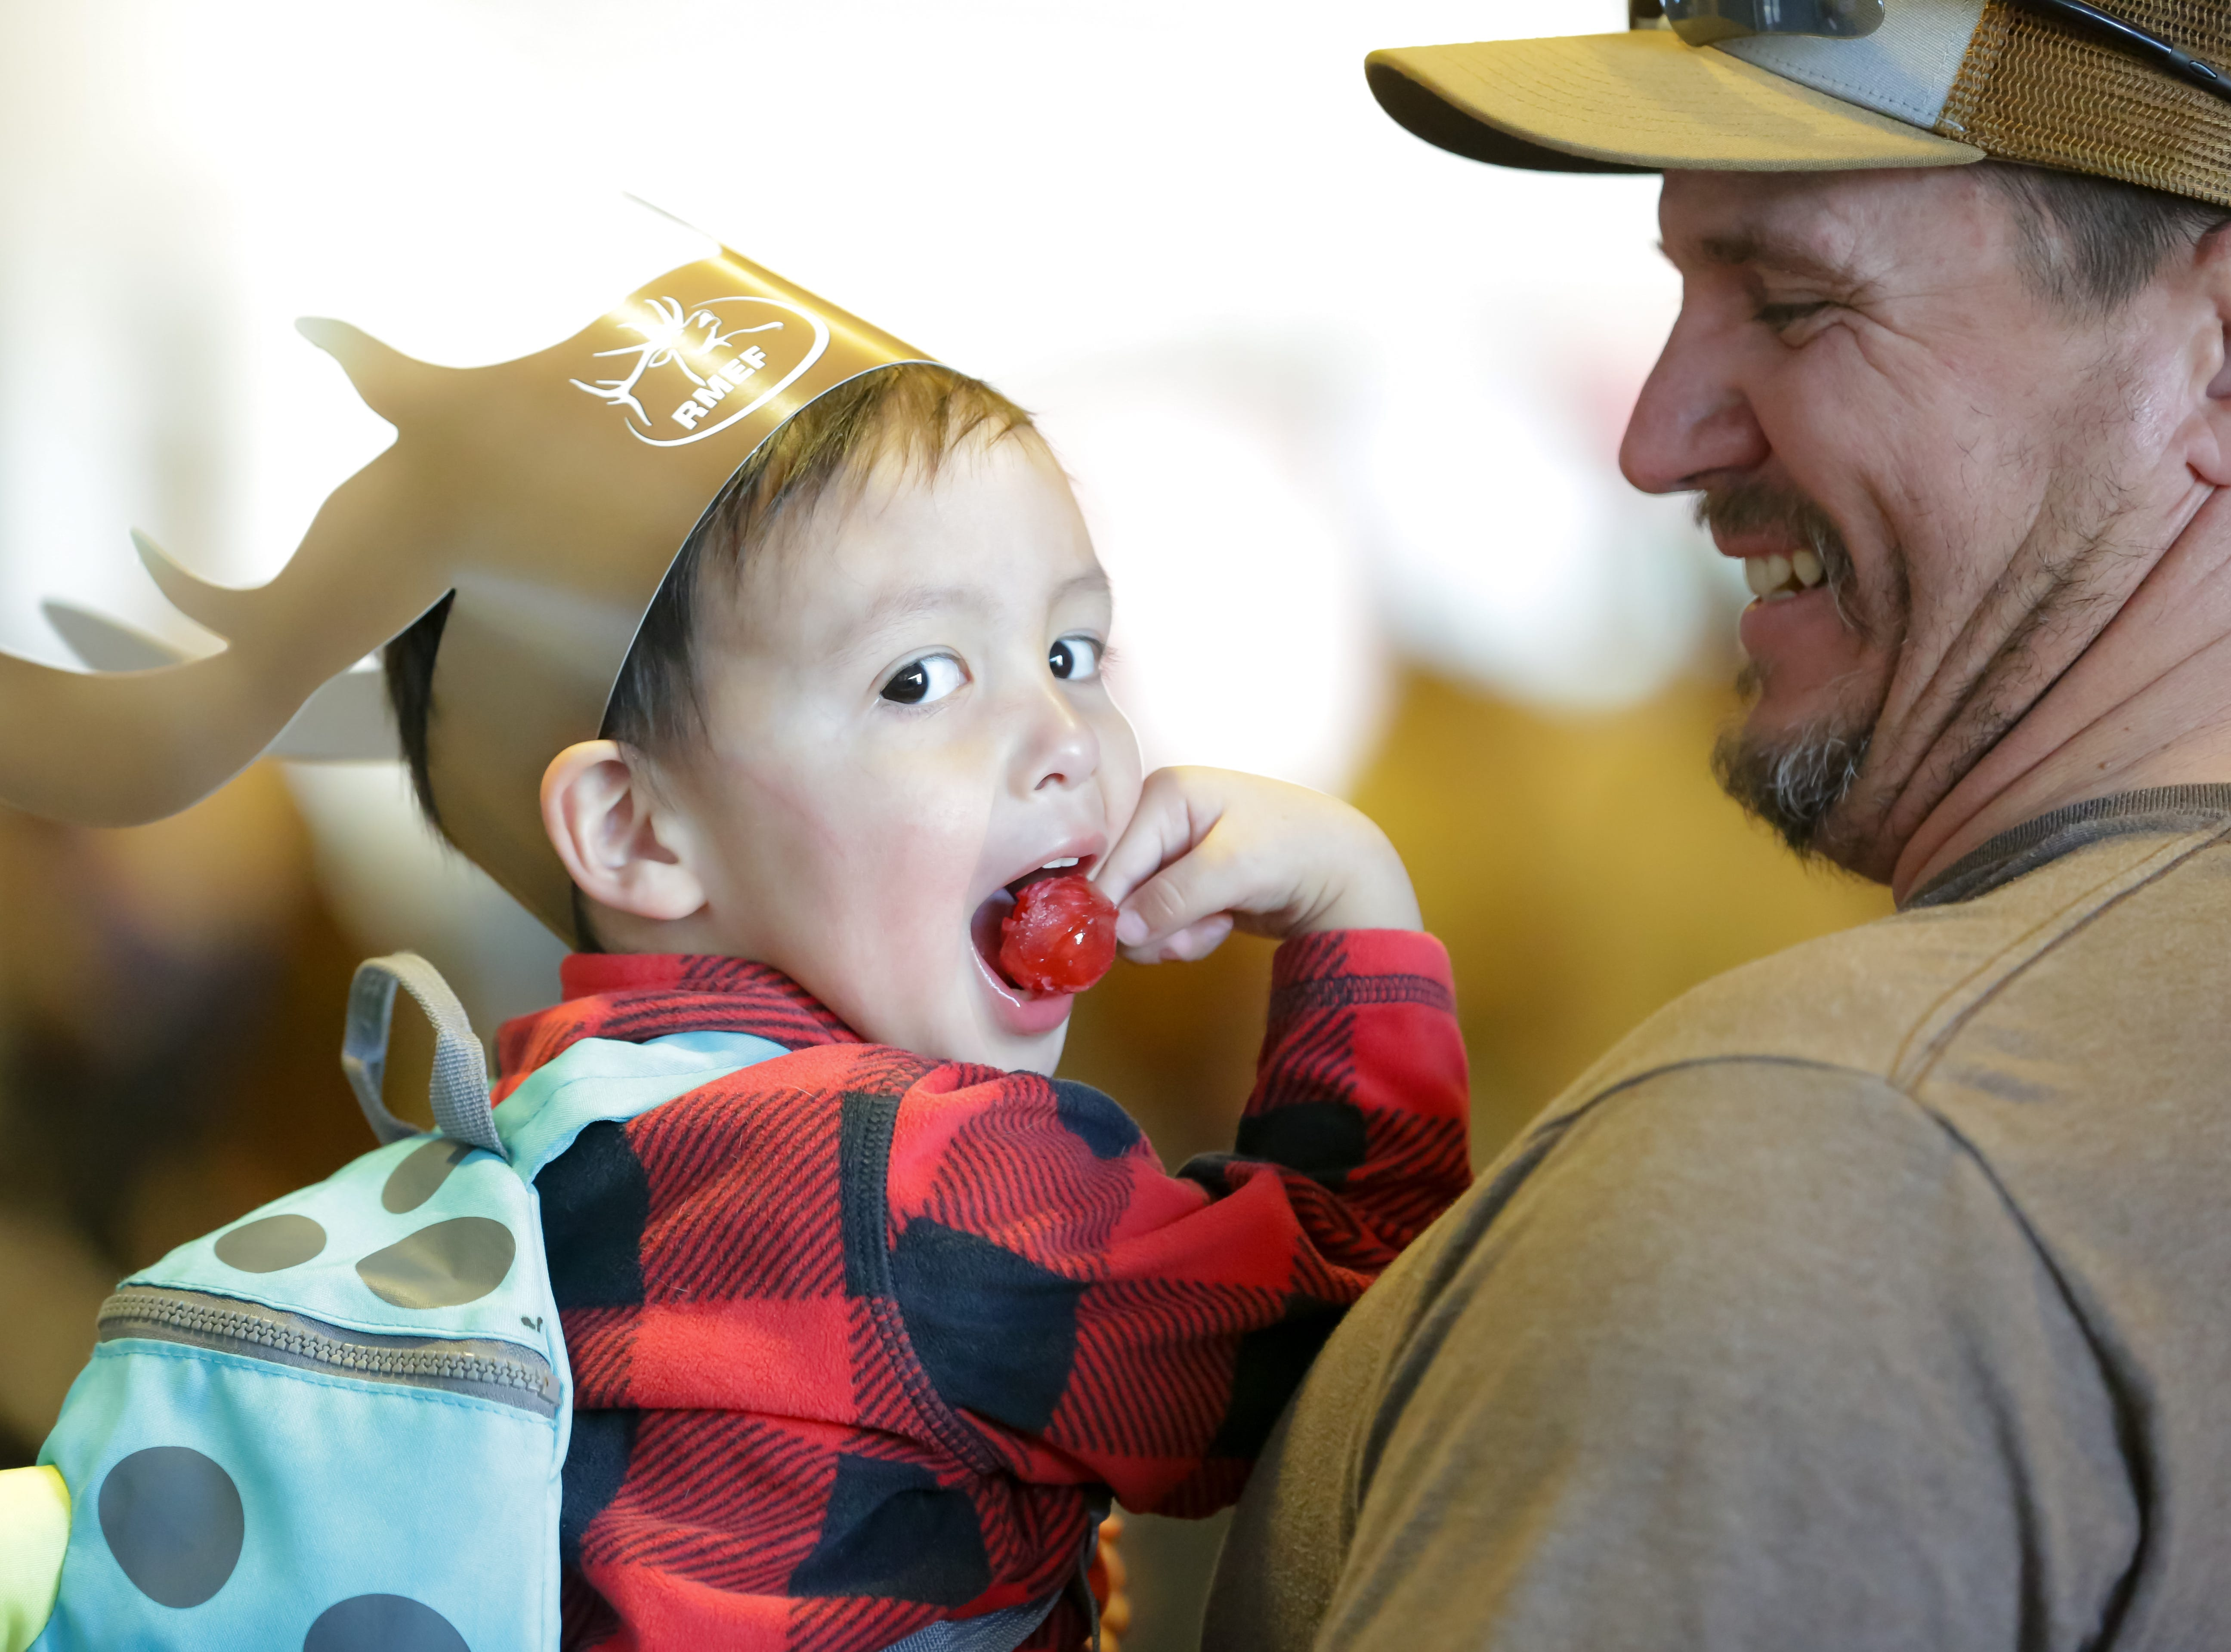 Ezekiel White, 2, wears antlers and enjoys a lollipop while hanging out with his grandfather Loring White on Saturday, Jan. 12, 2019, during the 2019 Mesilla Valley Outdoor Expo at the Las Cruces Convention Center.